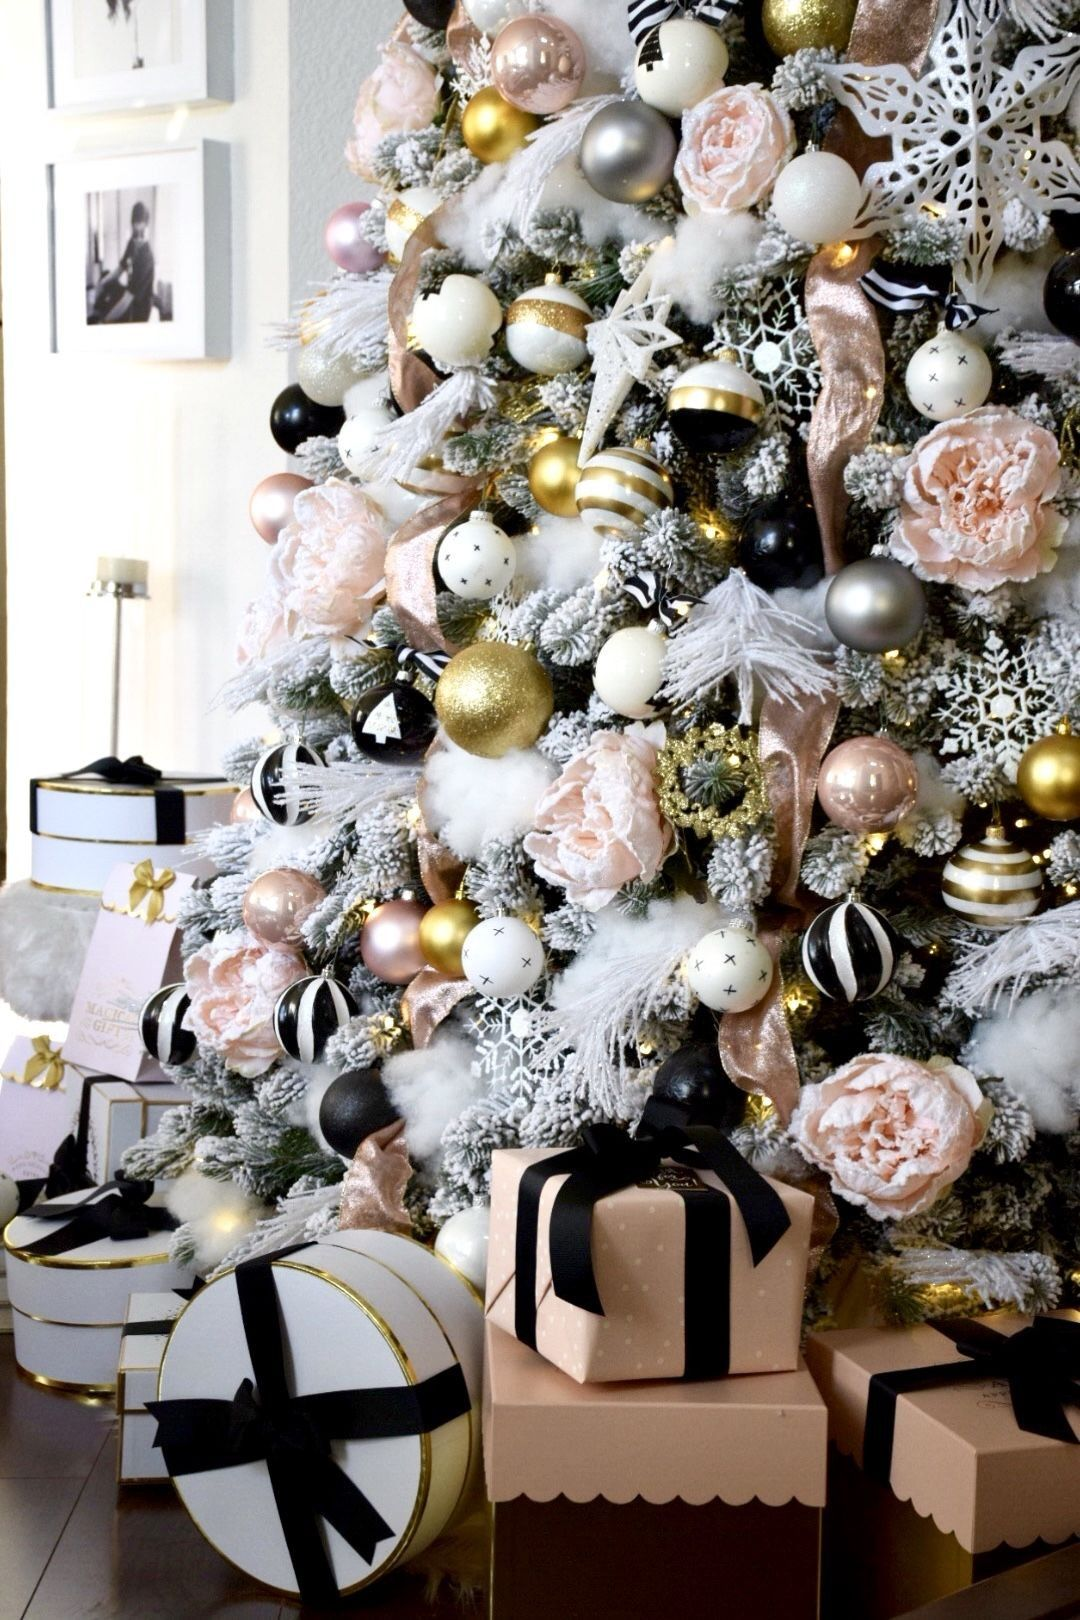 Trees And Trends Christmas 2020 Best Christmas Tree Ideas for 2019   TrendBook Trend Forecasting